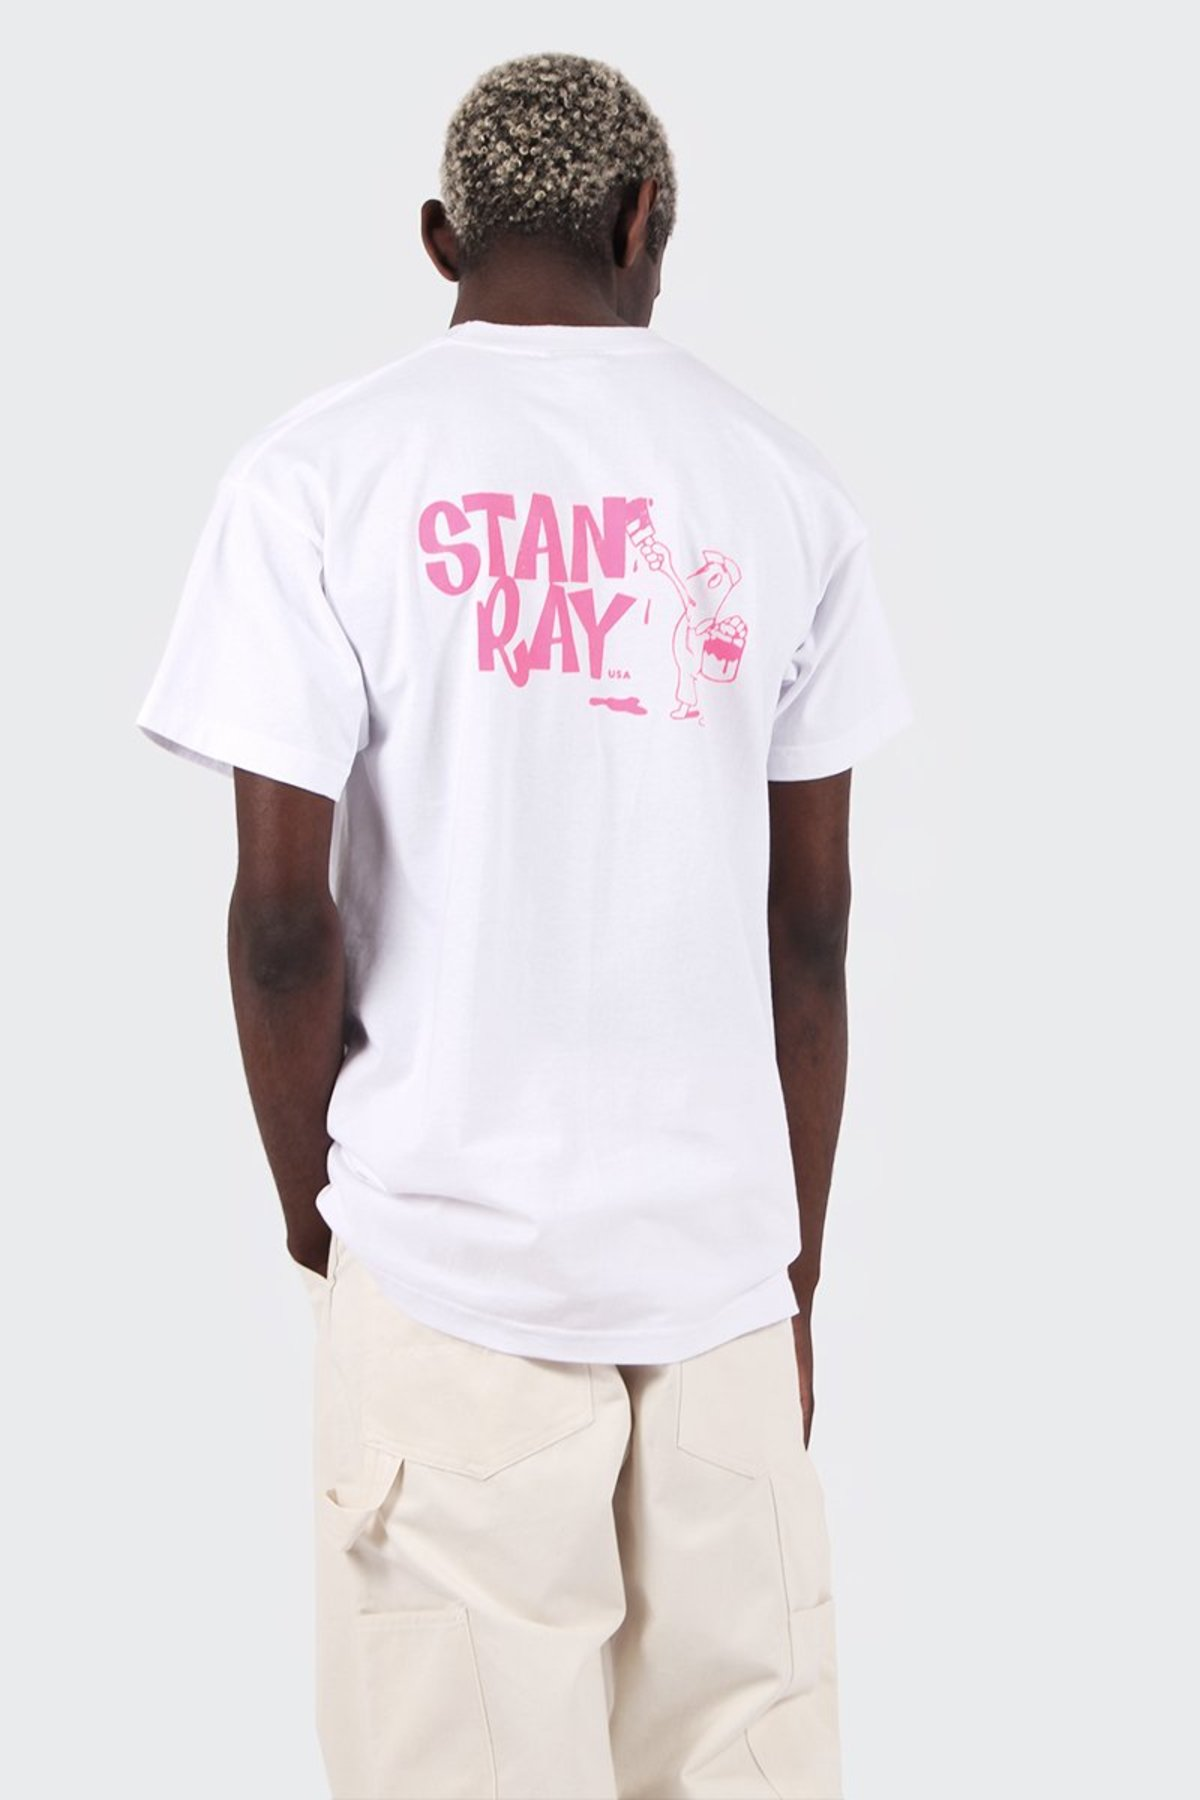 Stan Ray Painter T-Shirt - White pink  1756990167f8